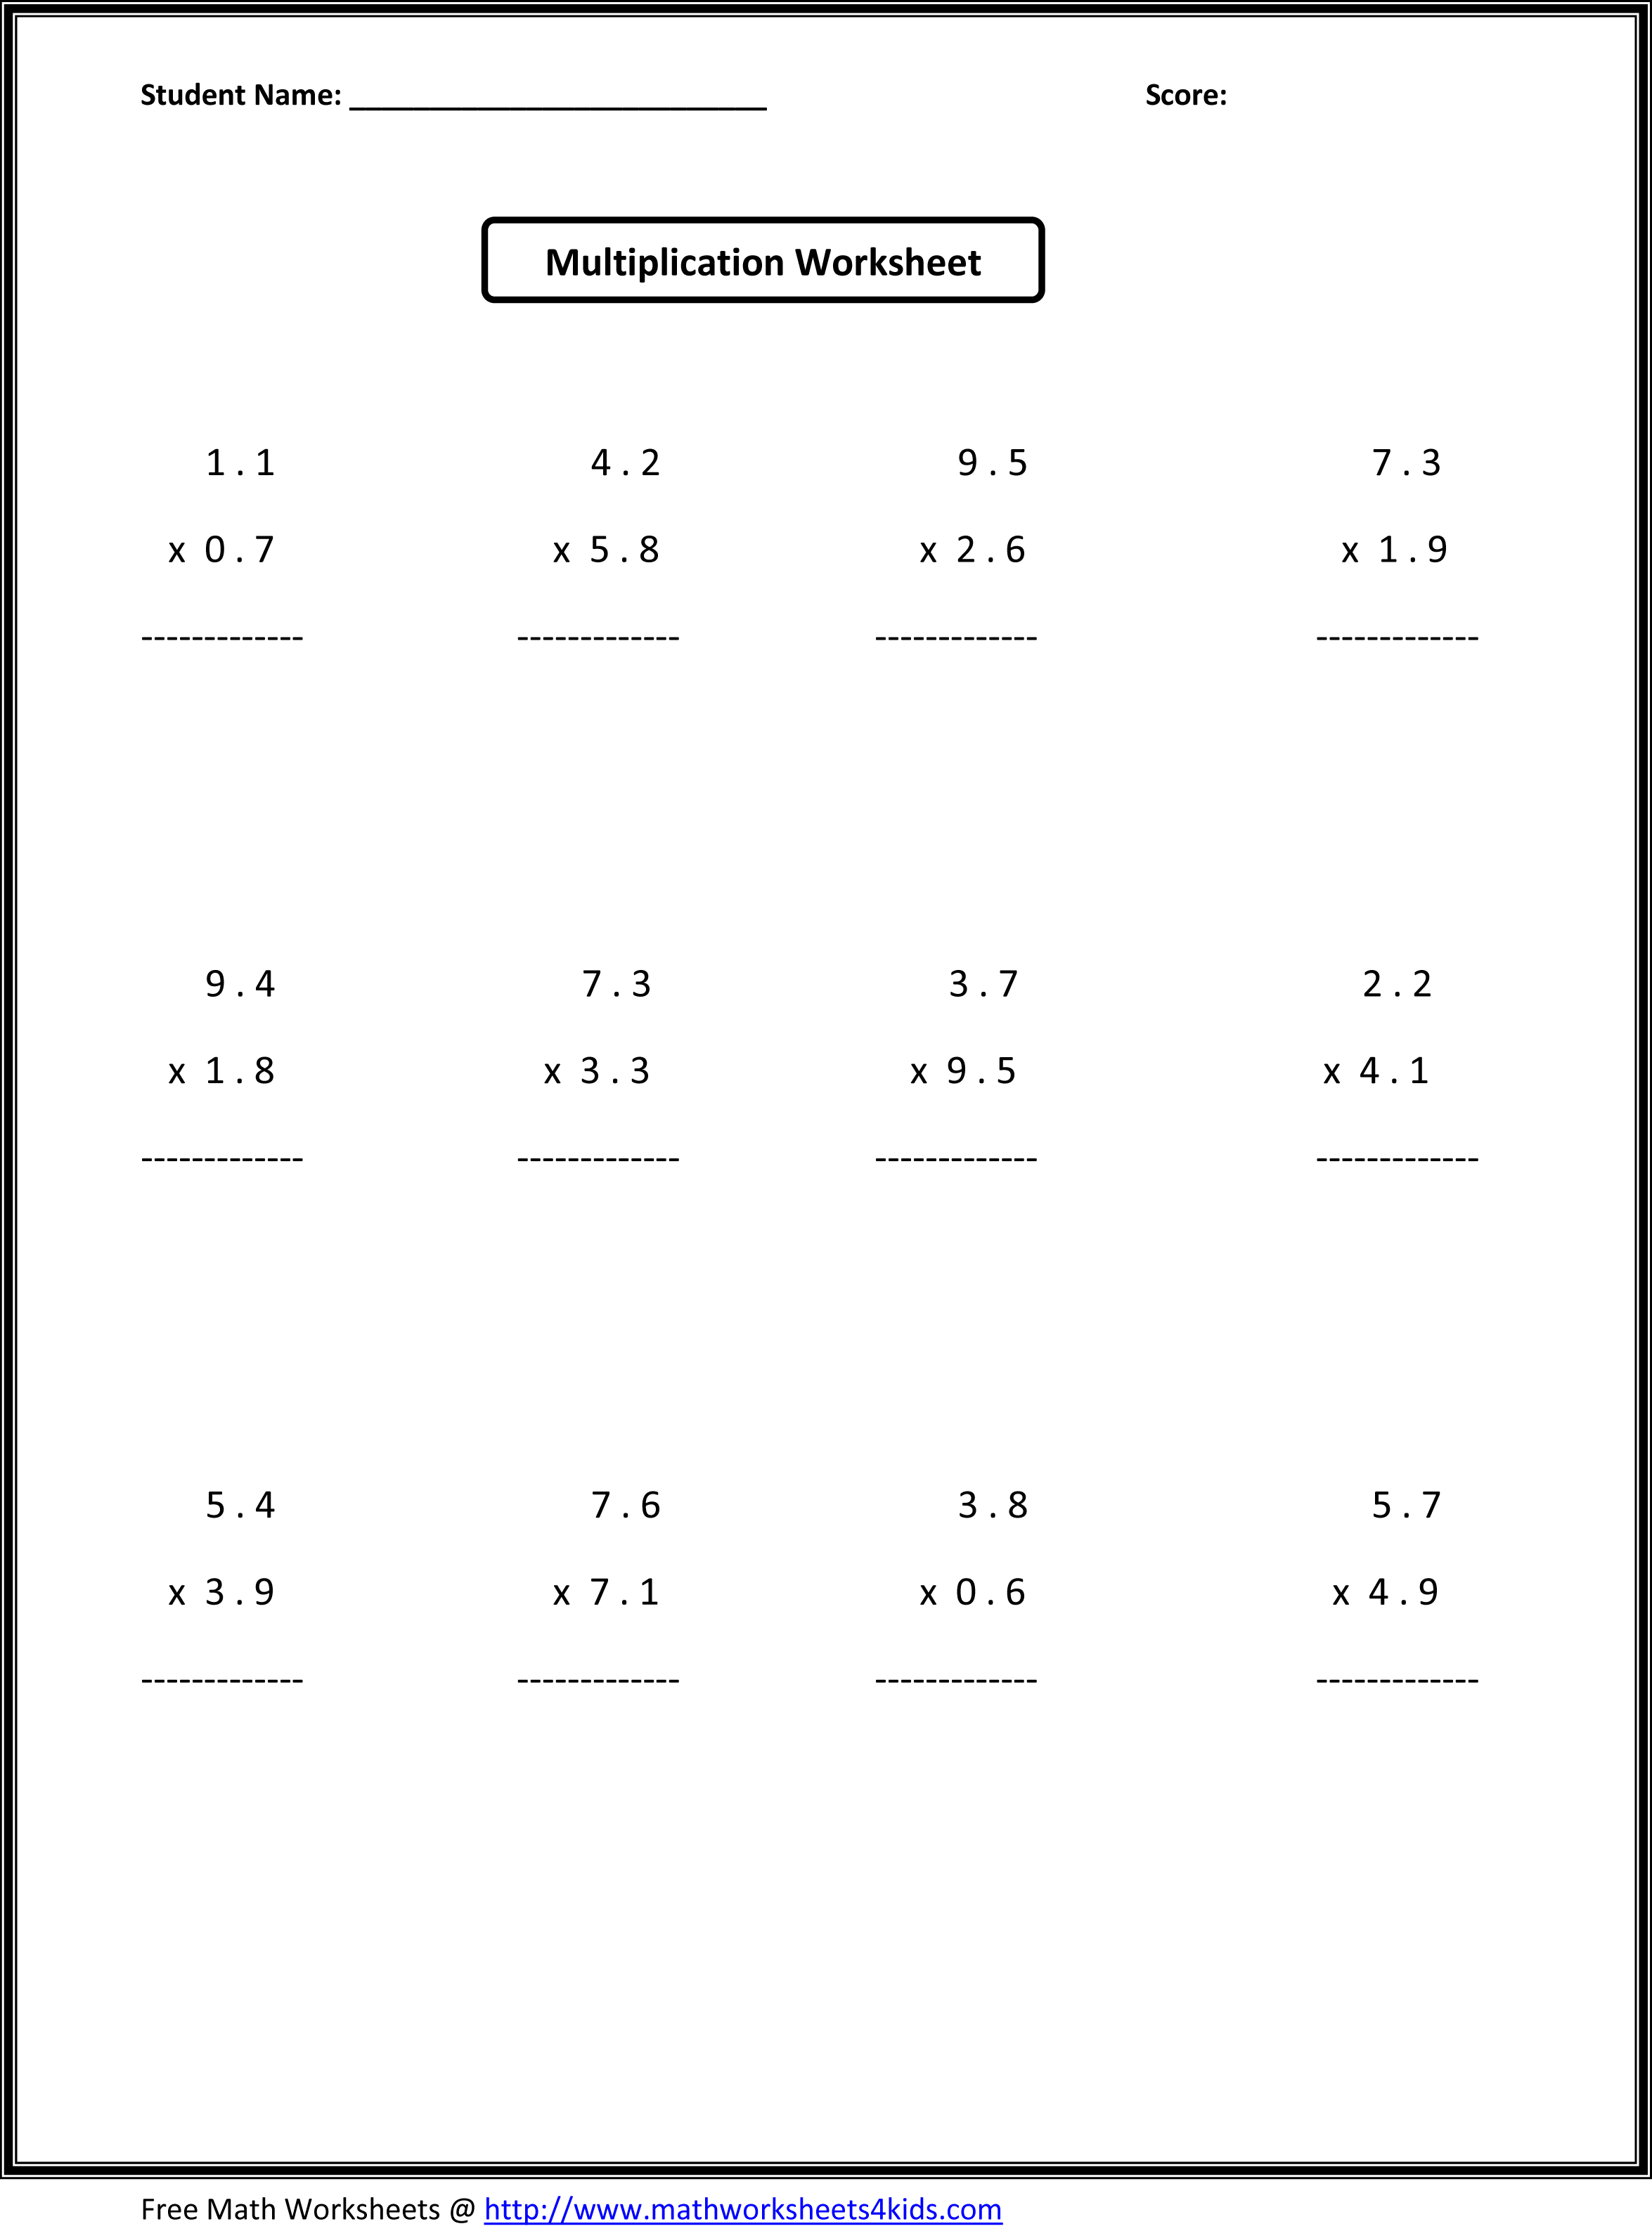 11 Best Images Of Adding And Subtracting Fractions Worksheets With Answers